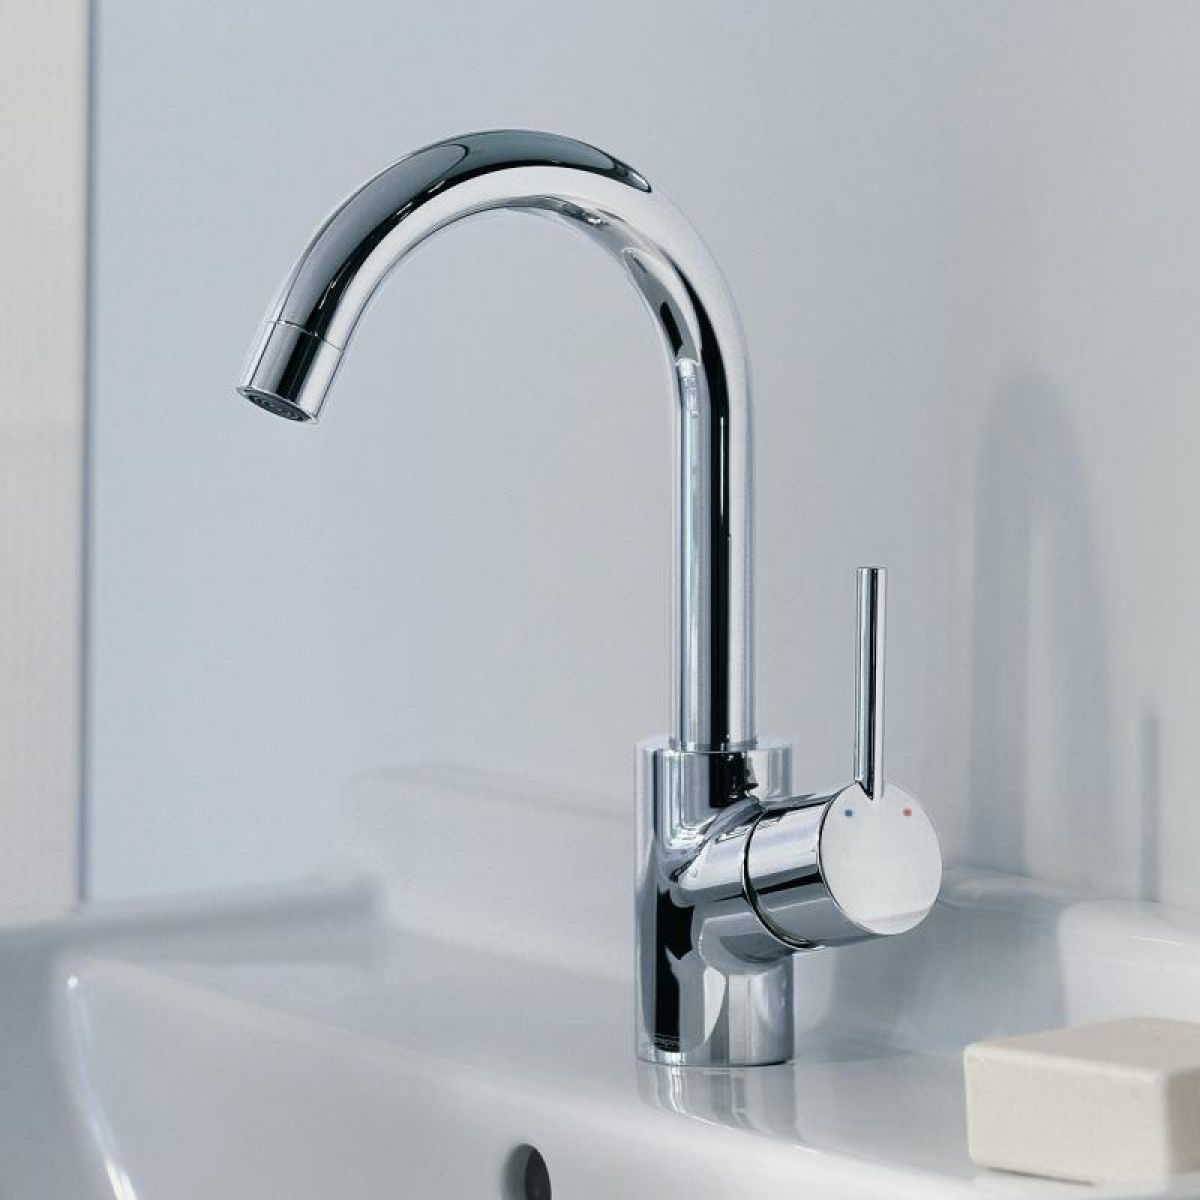 hansgrohe talis 39 s single lever basin mixer uk bathrooms. Black Bedroom Furniture Sets. Home Design Ideas